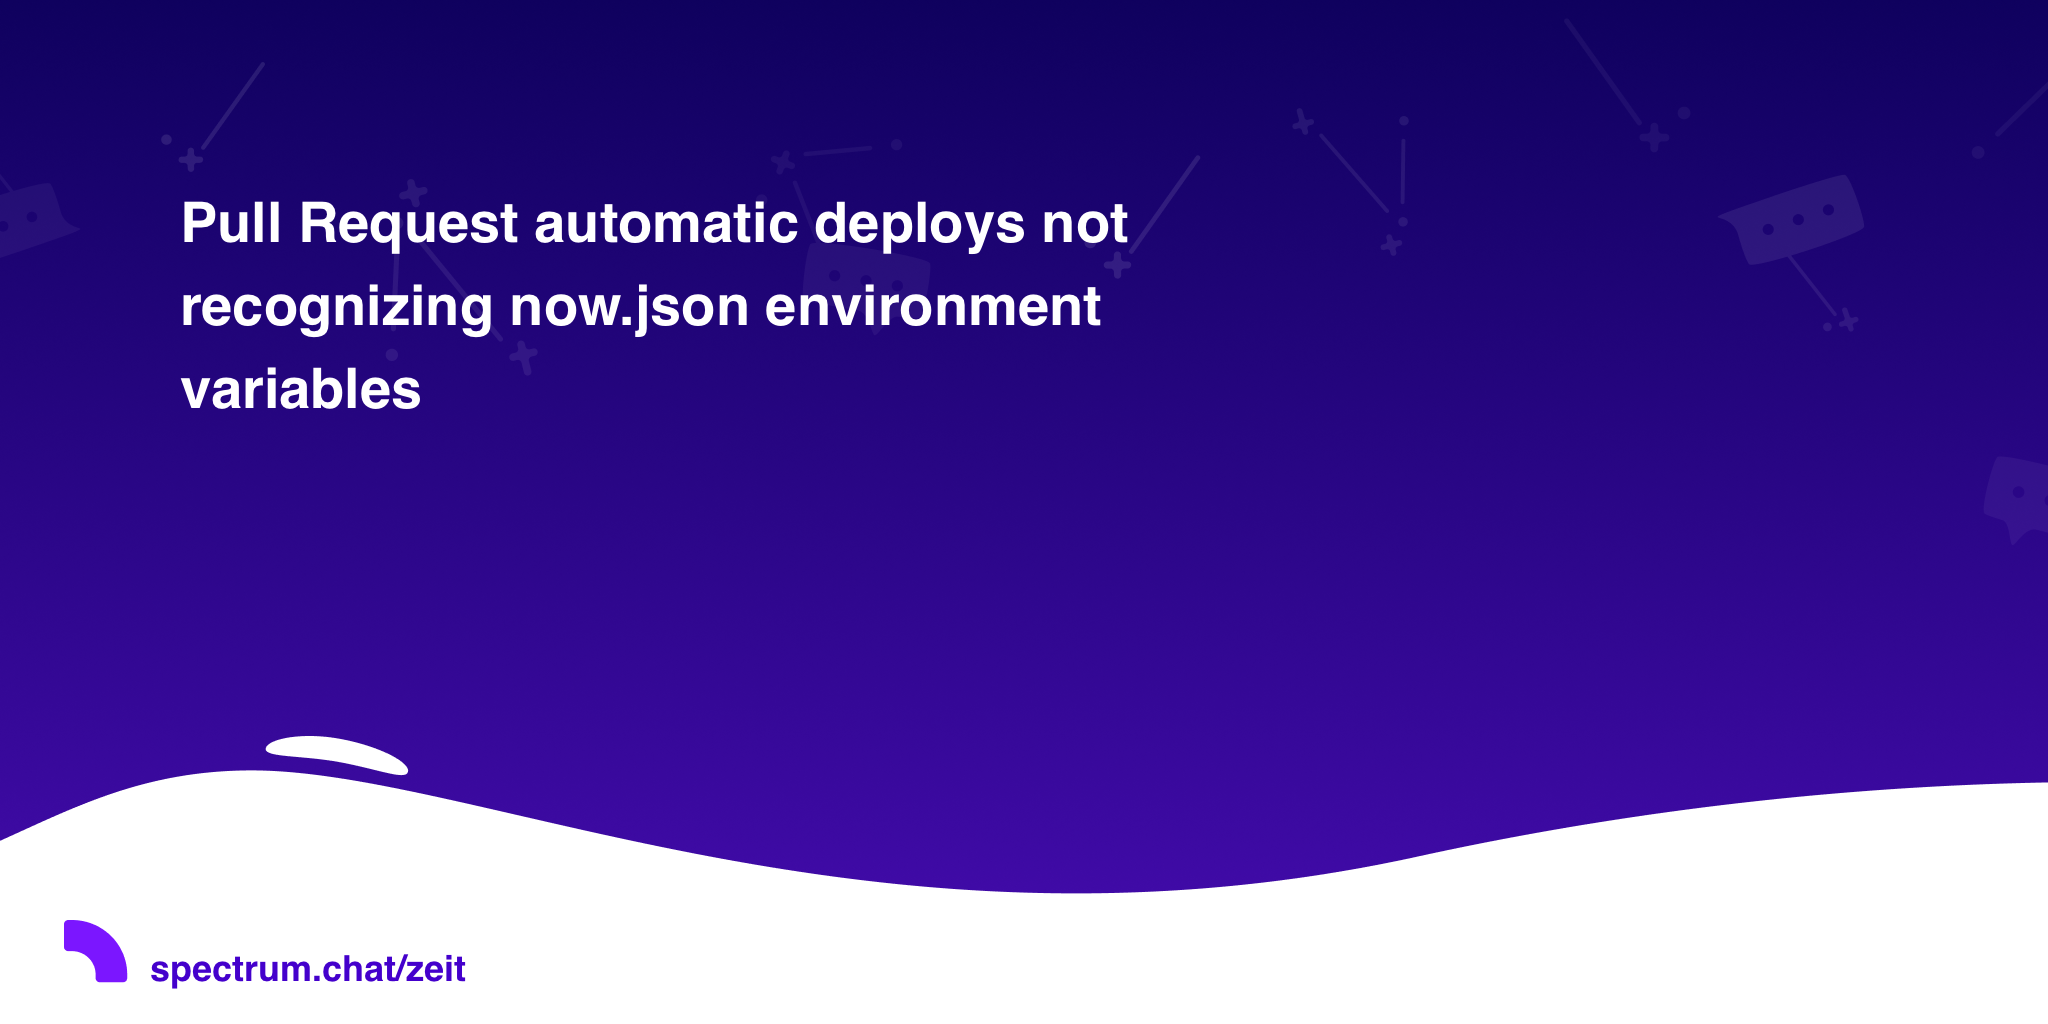 Pull Request automatic deploys not recognizing now json environment